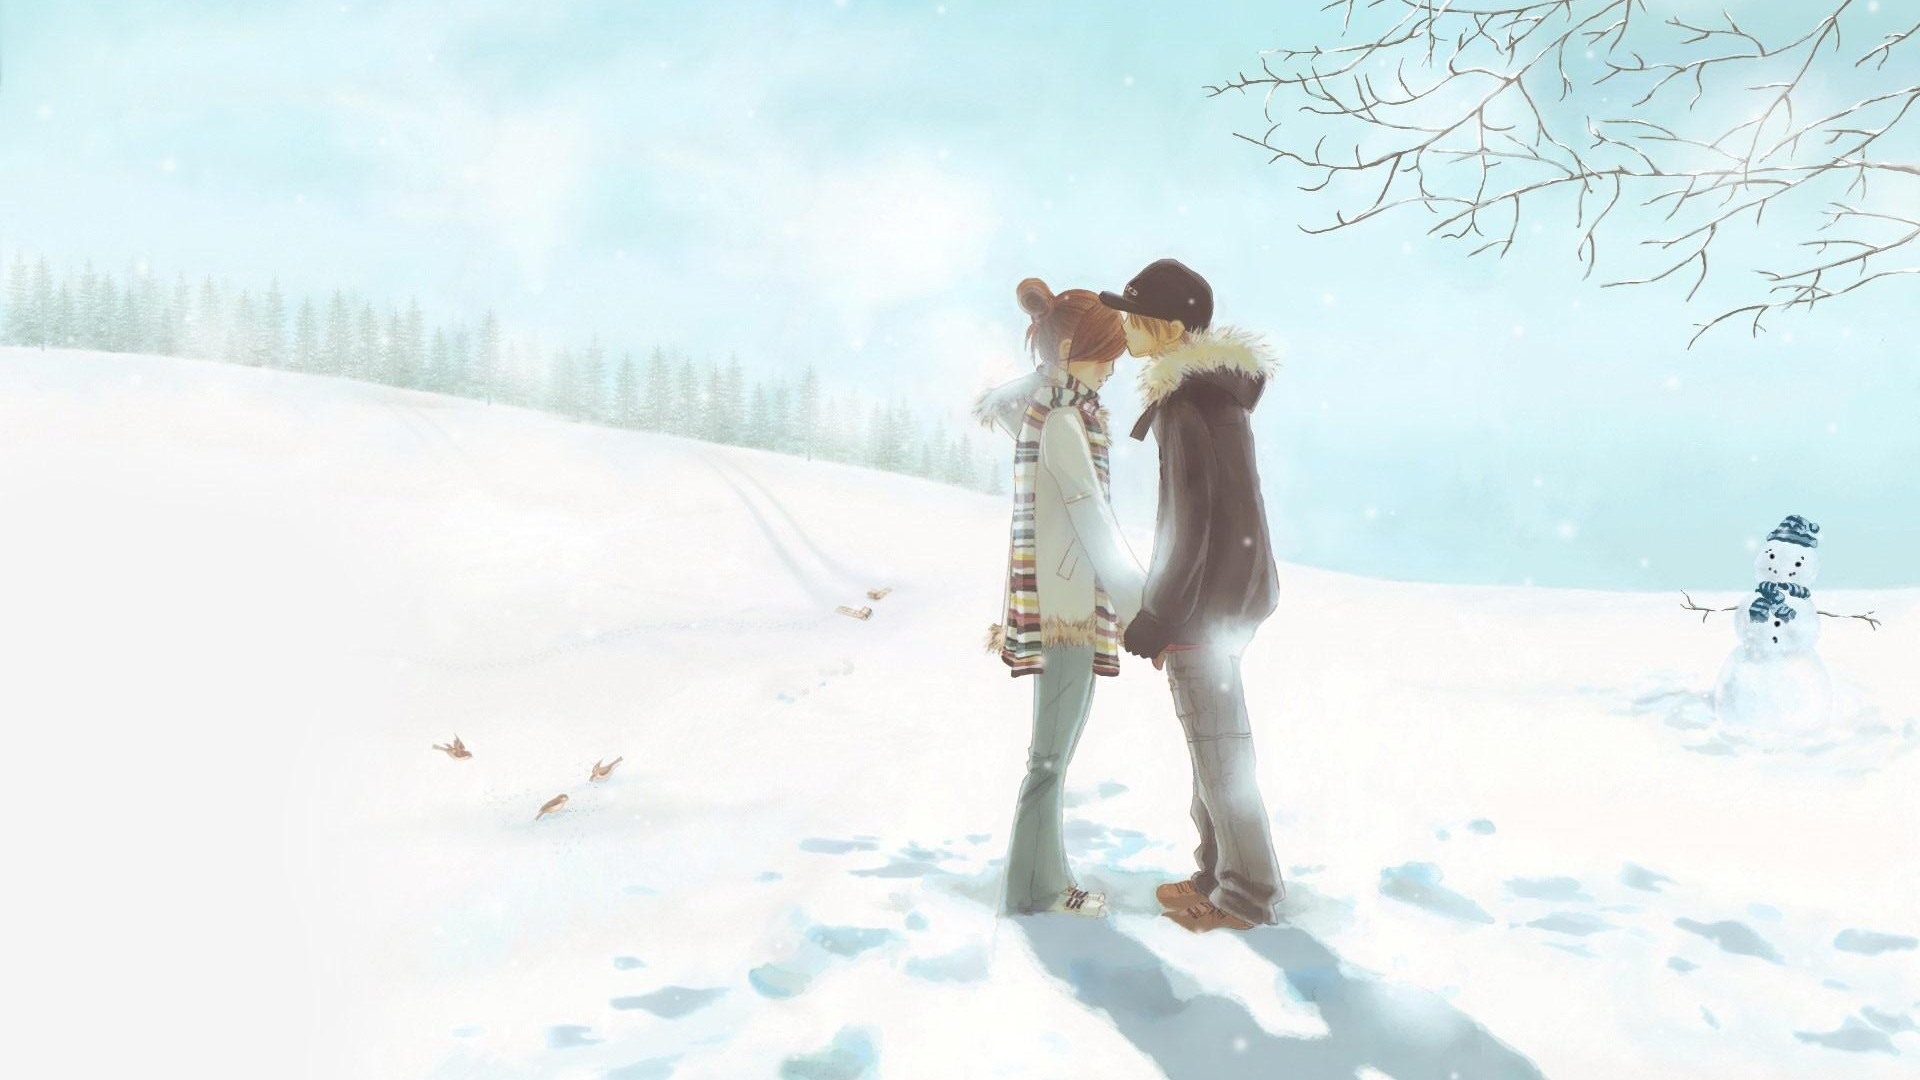 Cute Anime Couple Wallpaper 18880 Wallpapers Coolz HD Wallpaper 1920x1080